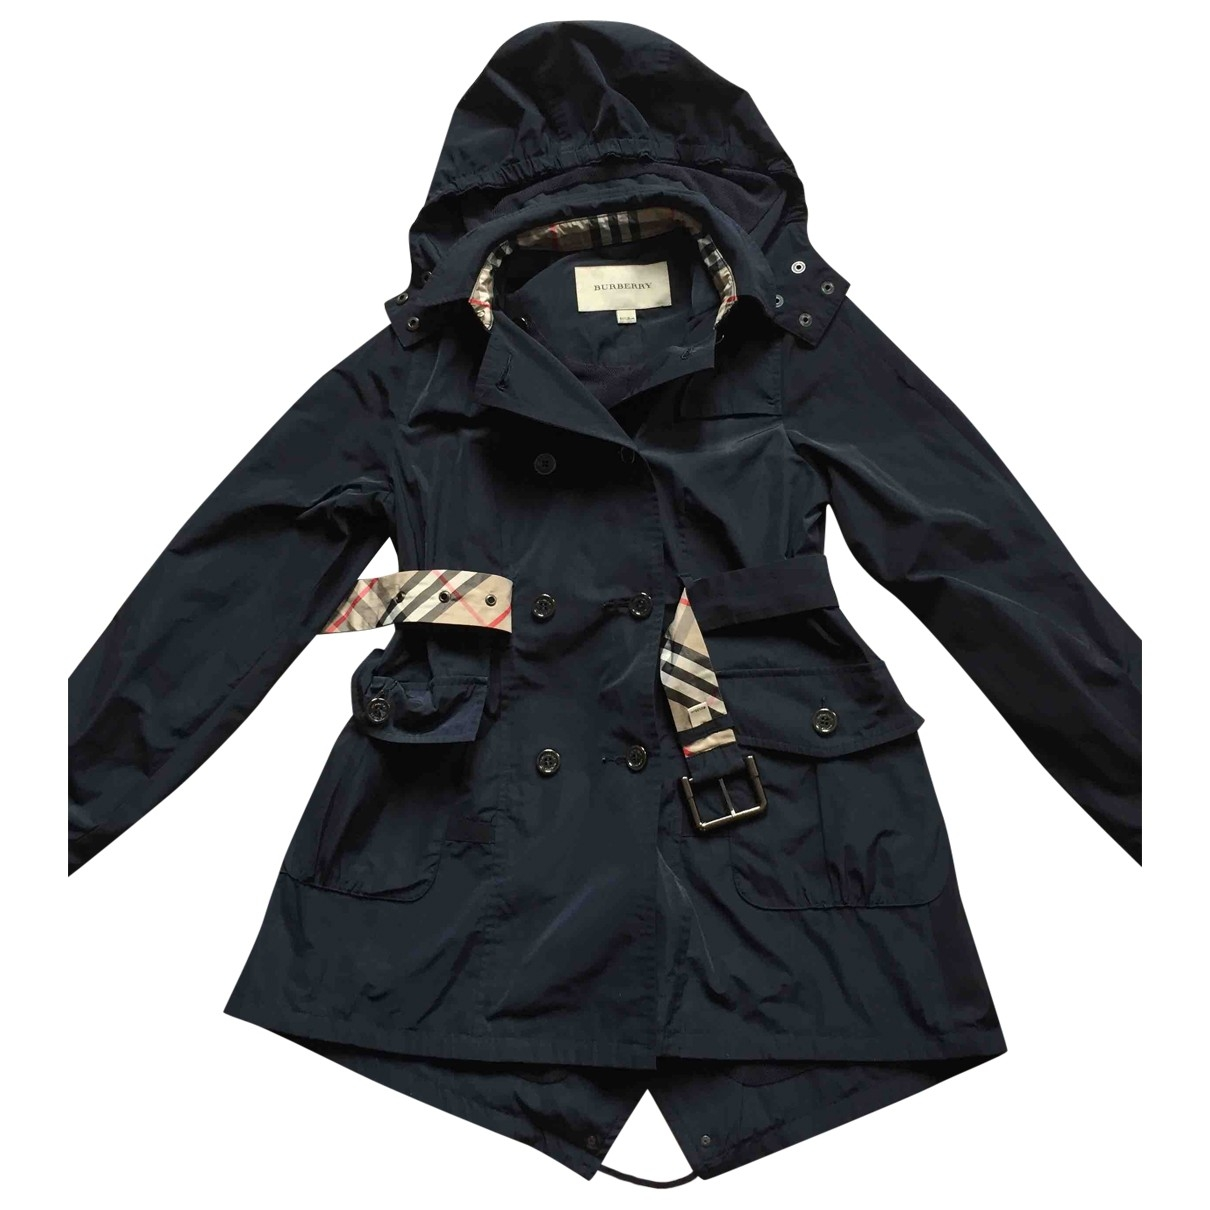 Burberry \N Blue jacket & coat for Kids 8 years - up to 128cm FR